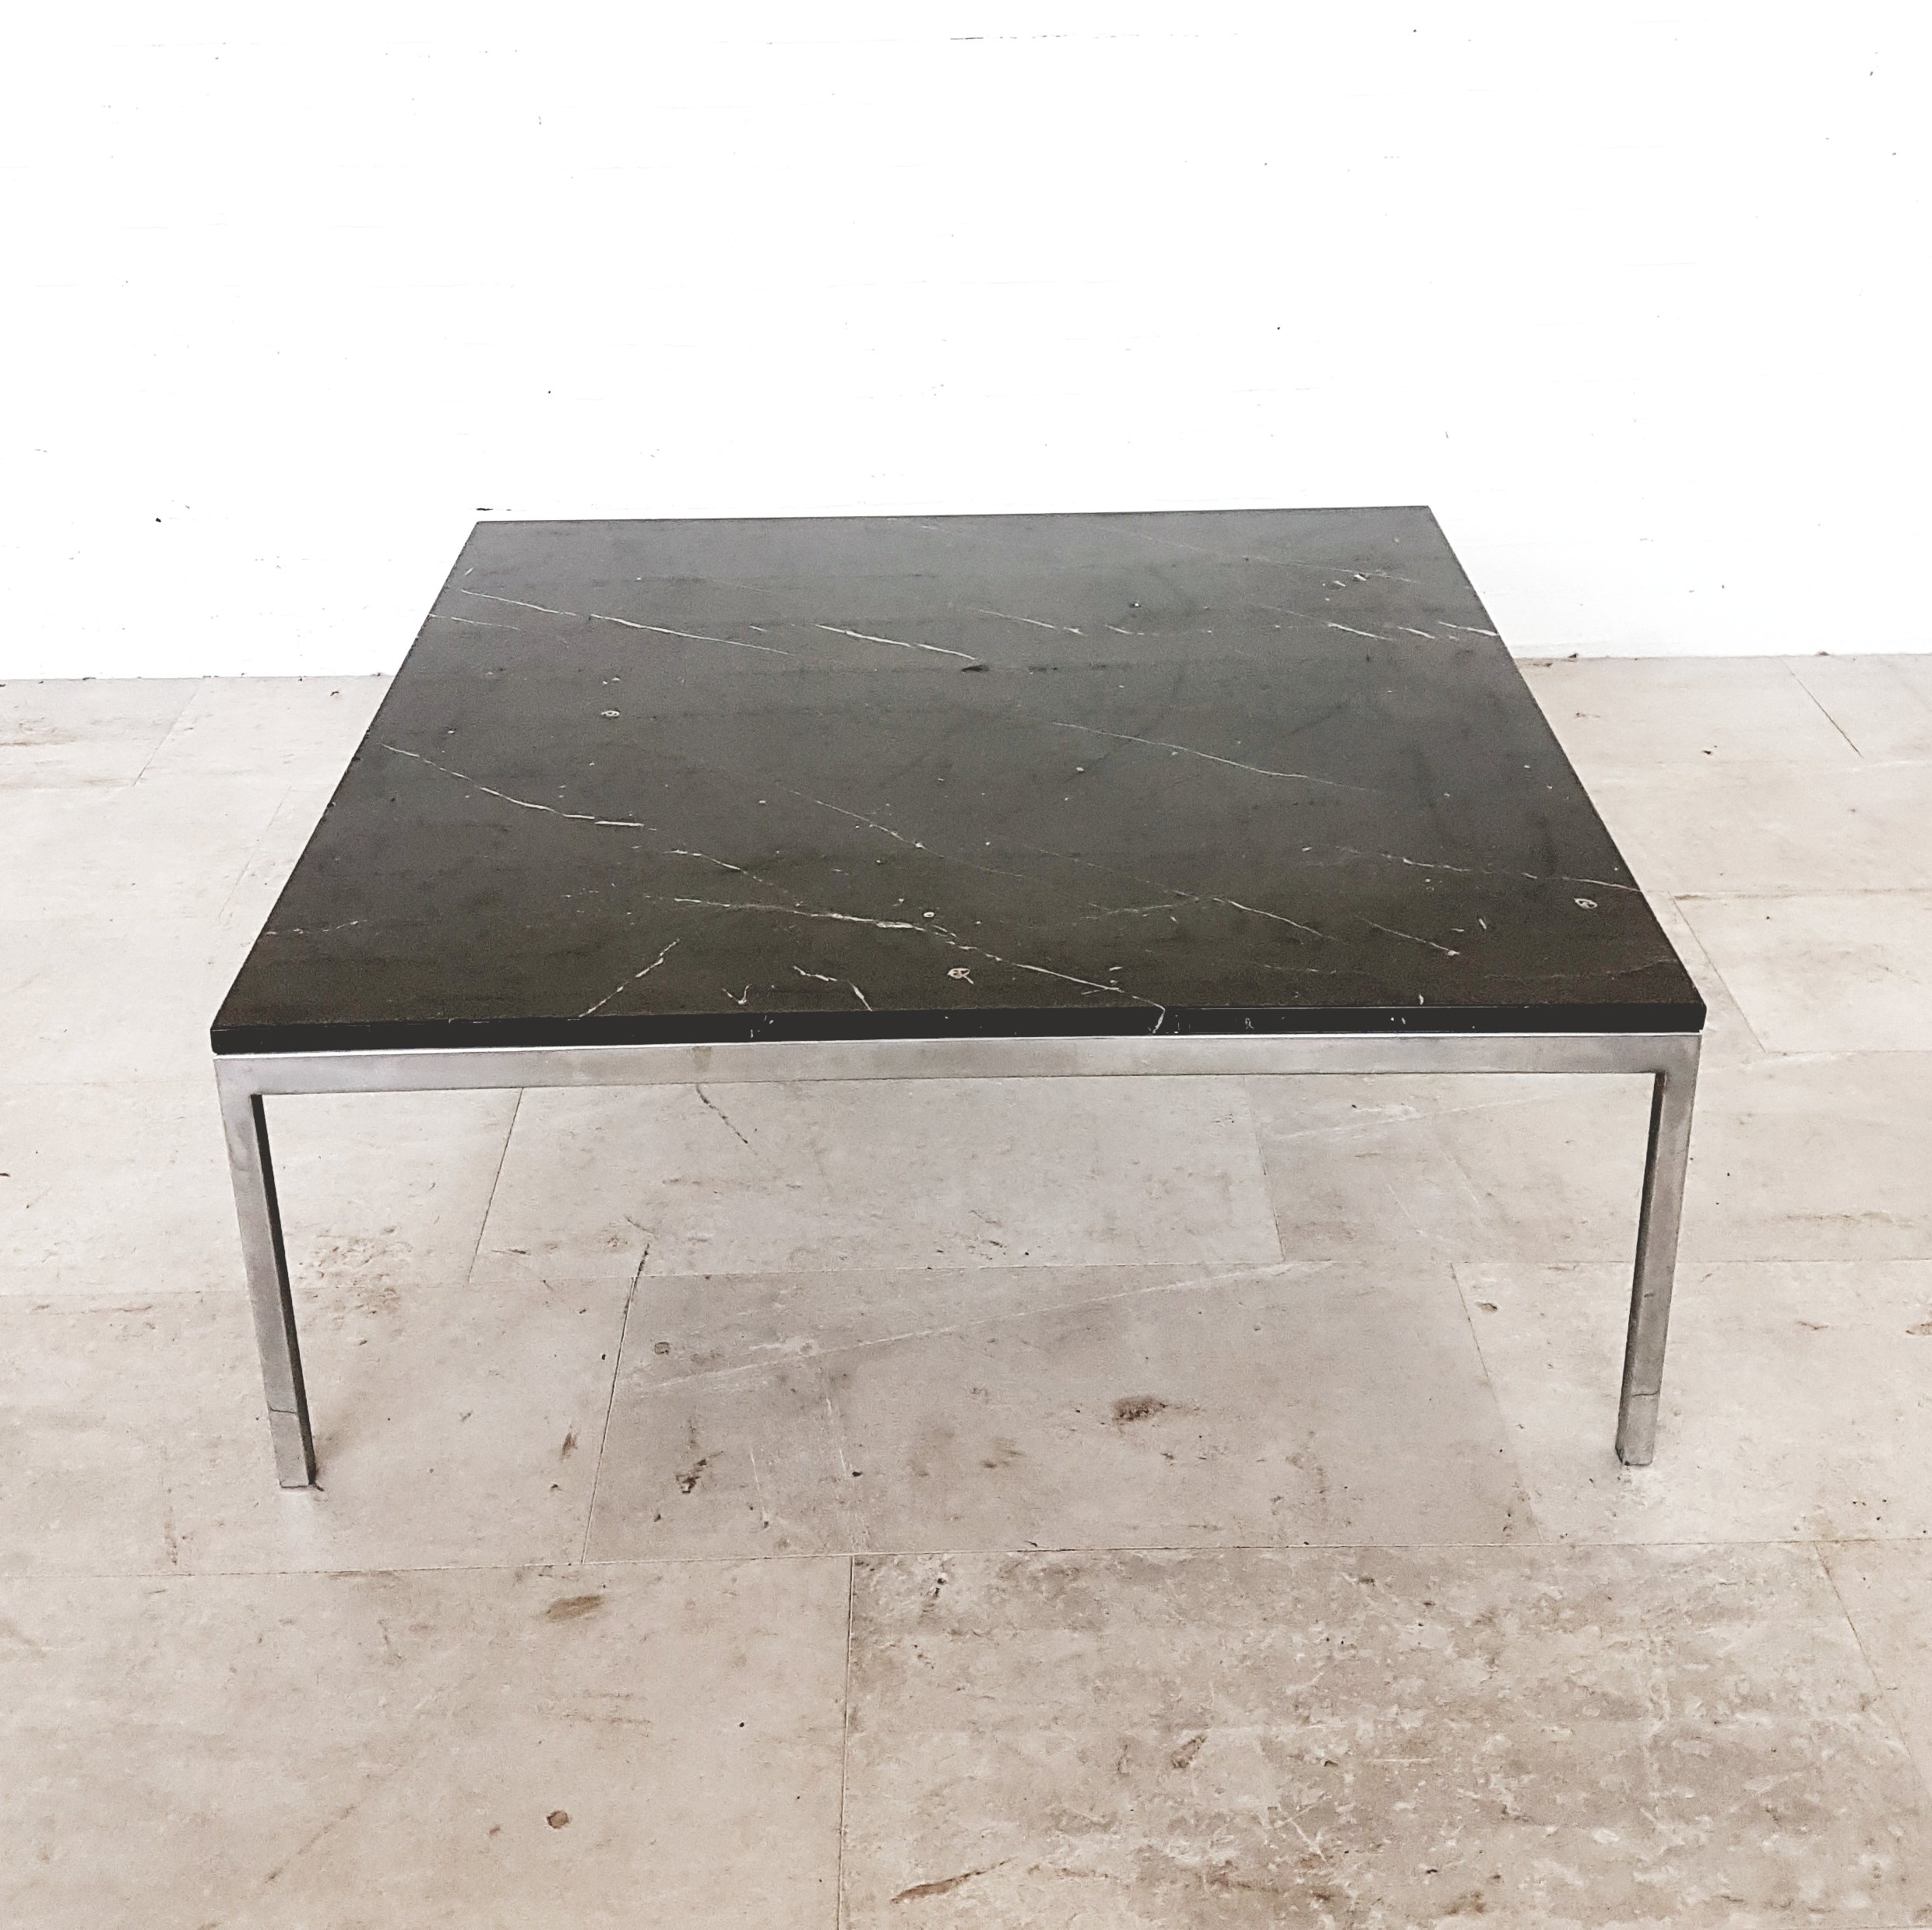 Knoll Marble Coffee Table: Black Marble Coffee Table By Florence Knoll For Knoll